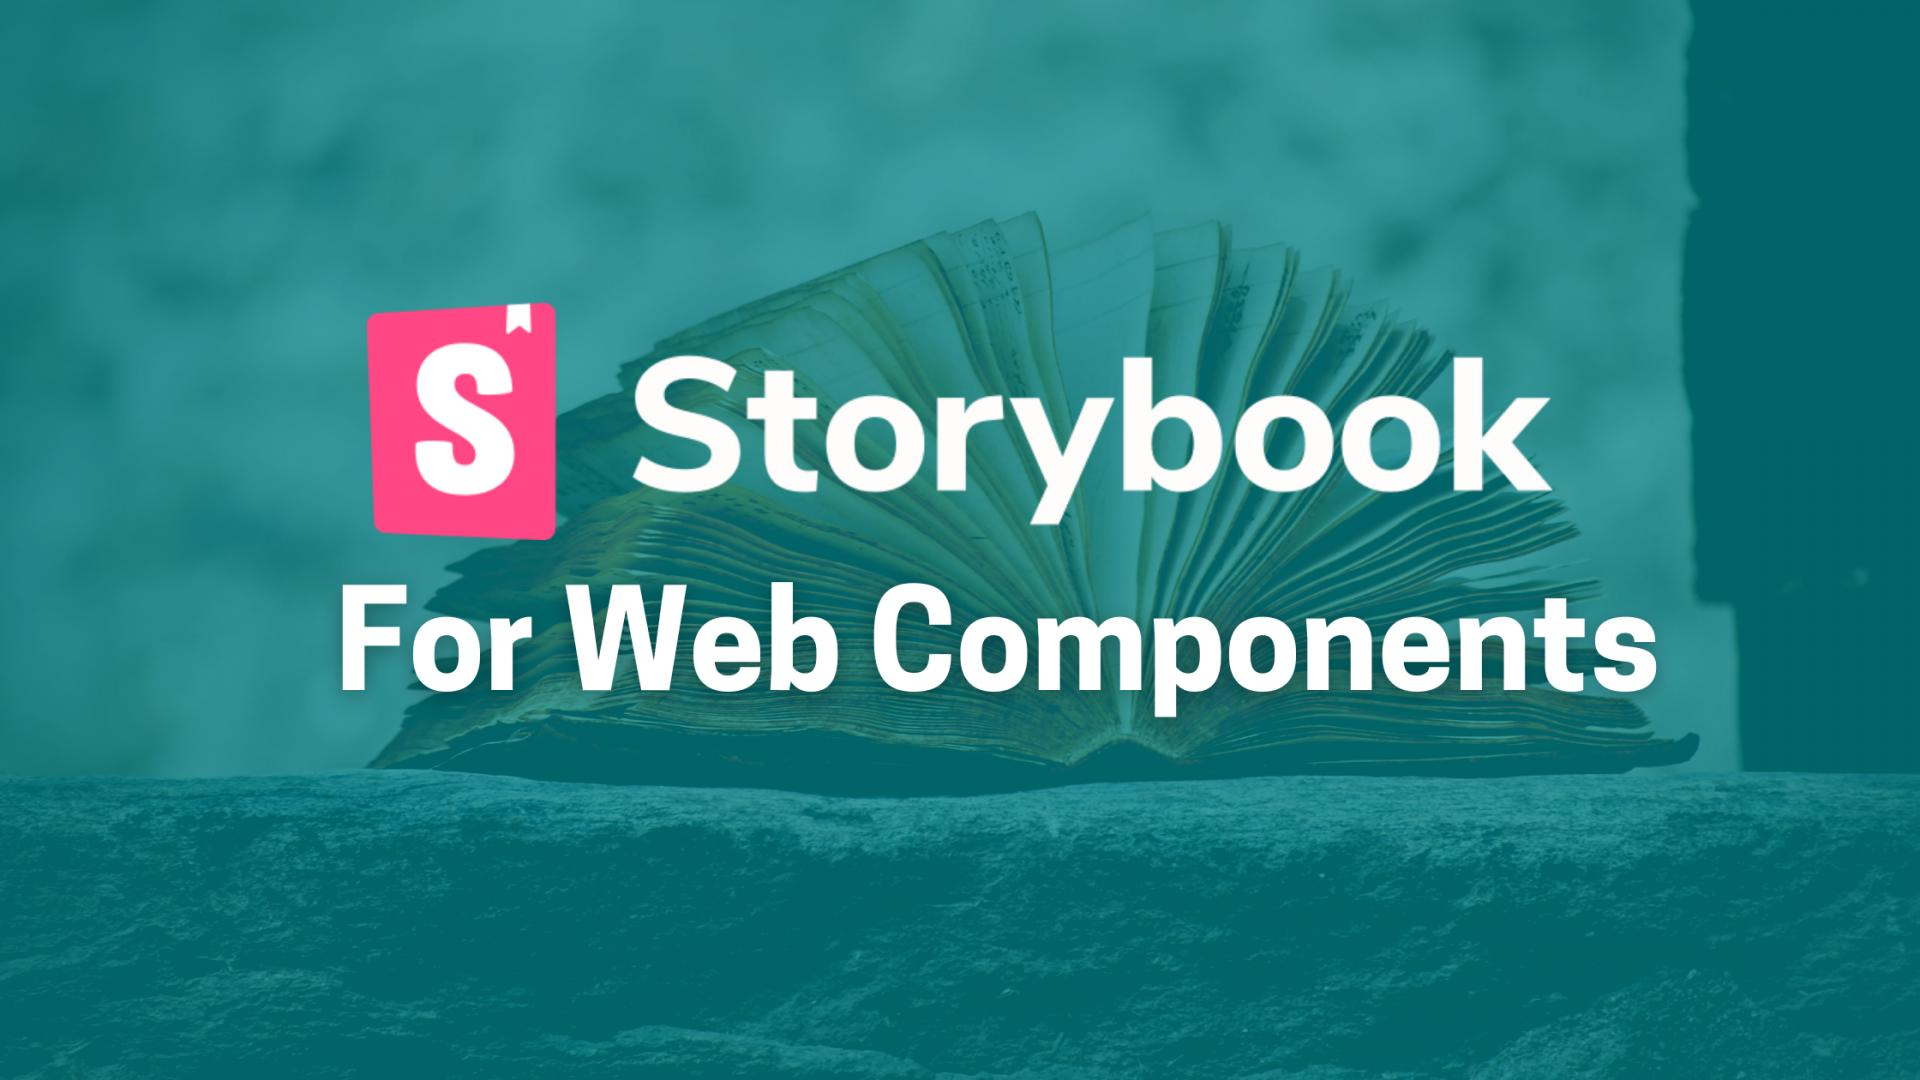 Introduction to Storybook for Web Components